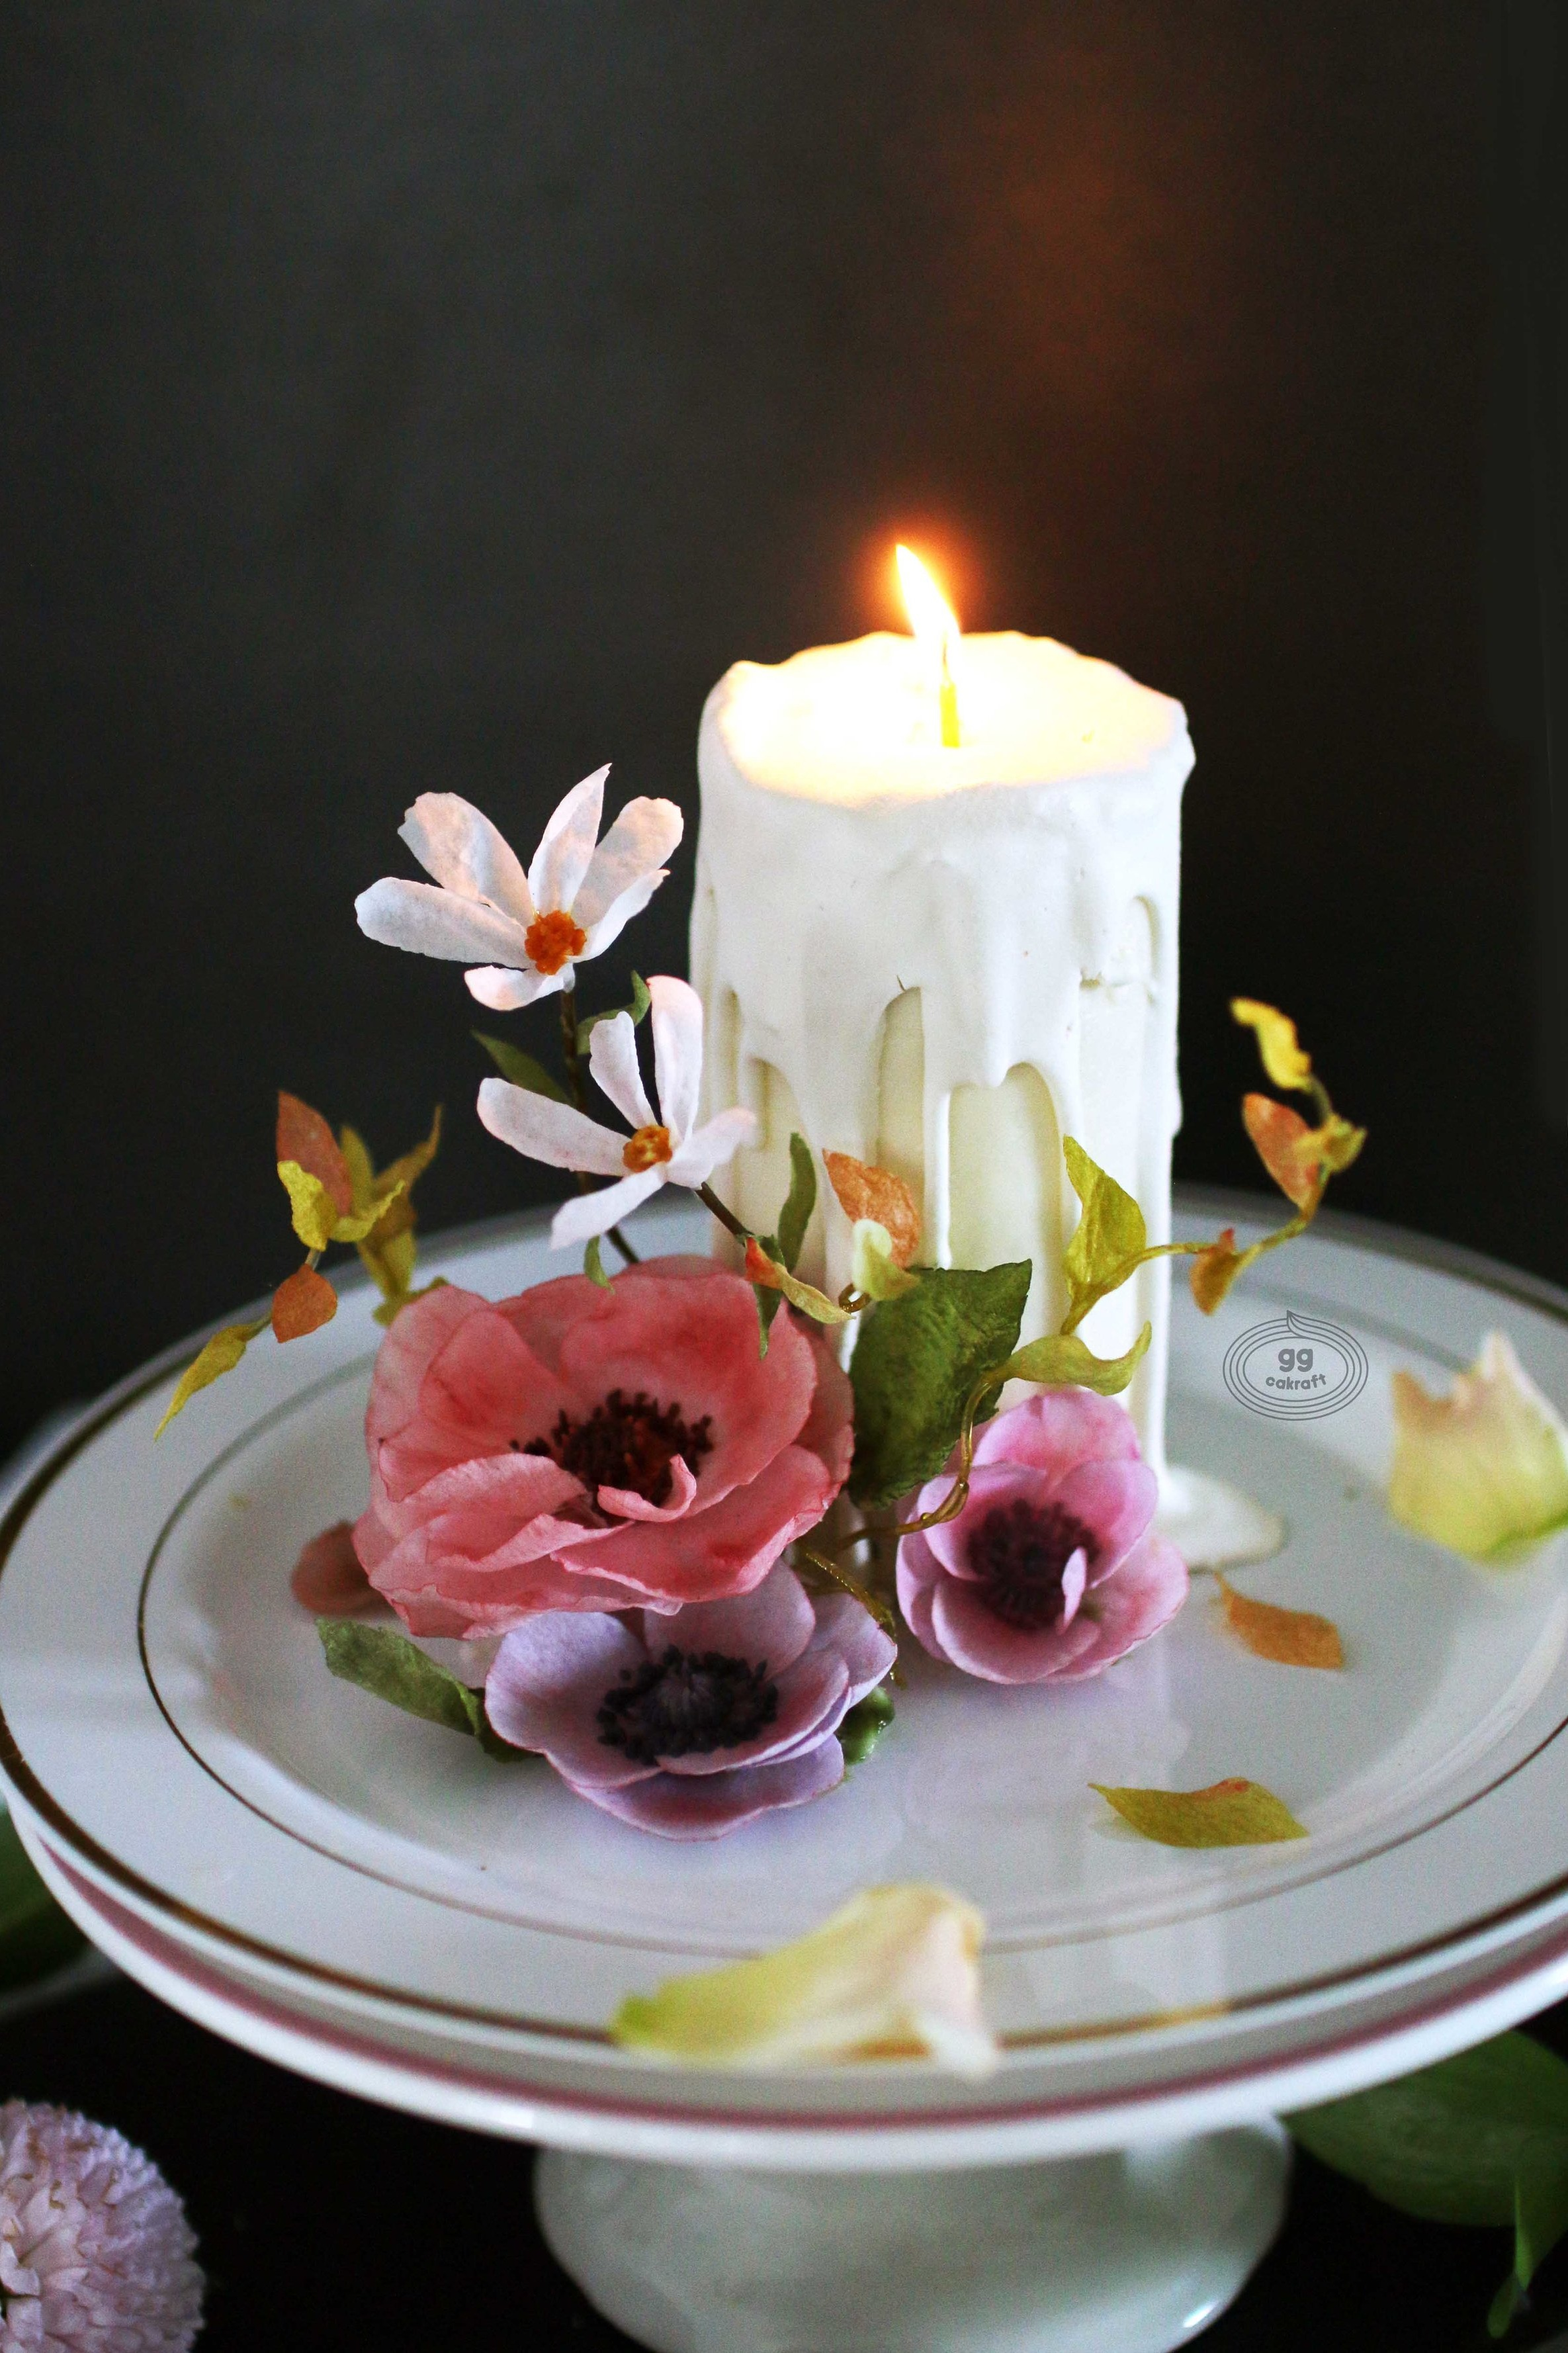 Day 1. Candle cake with Waper paper (All edible) (Real cake)   - Candle cake icing  - Anemone, Cosmos, Lavander, 3D leaf, 3D stem